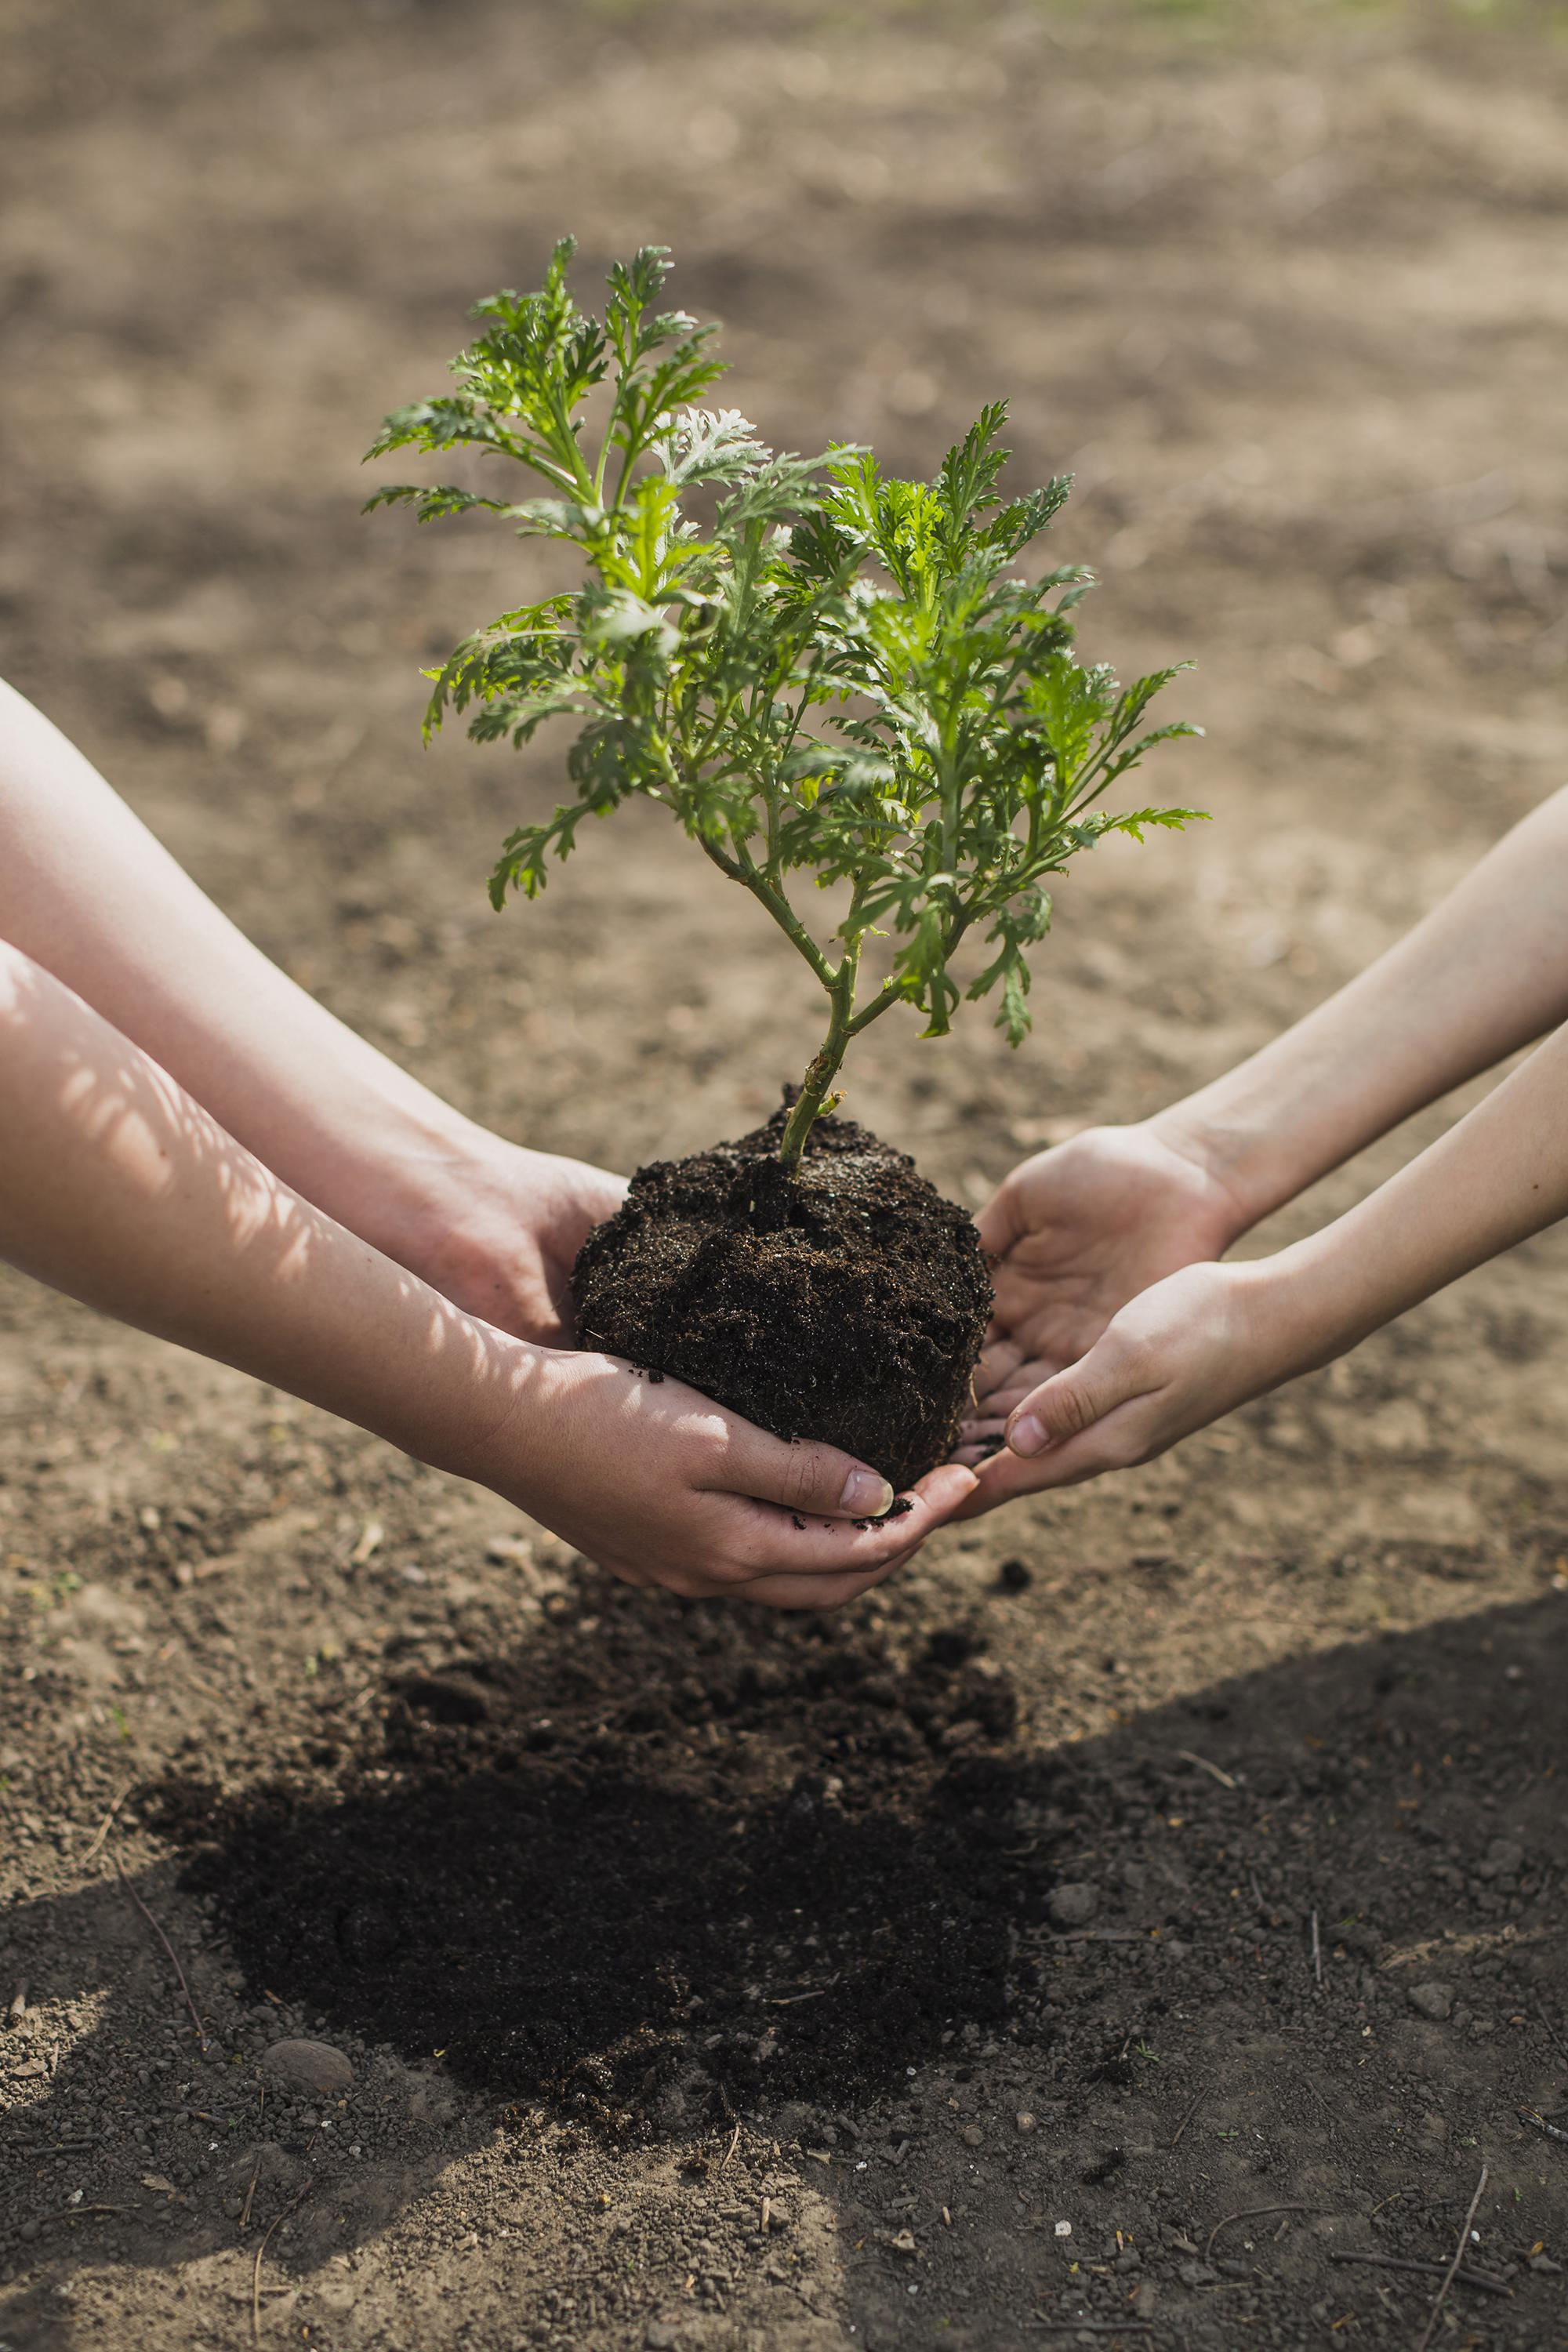 two sets of hands planting a tree